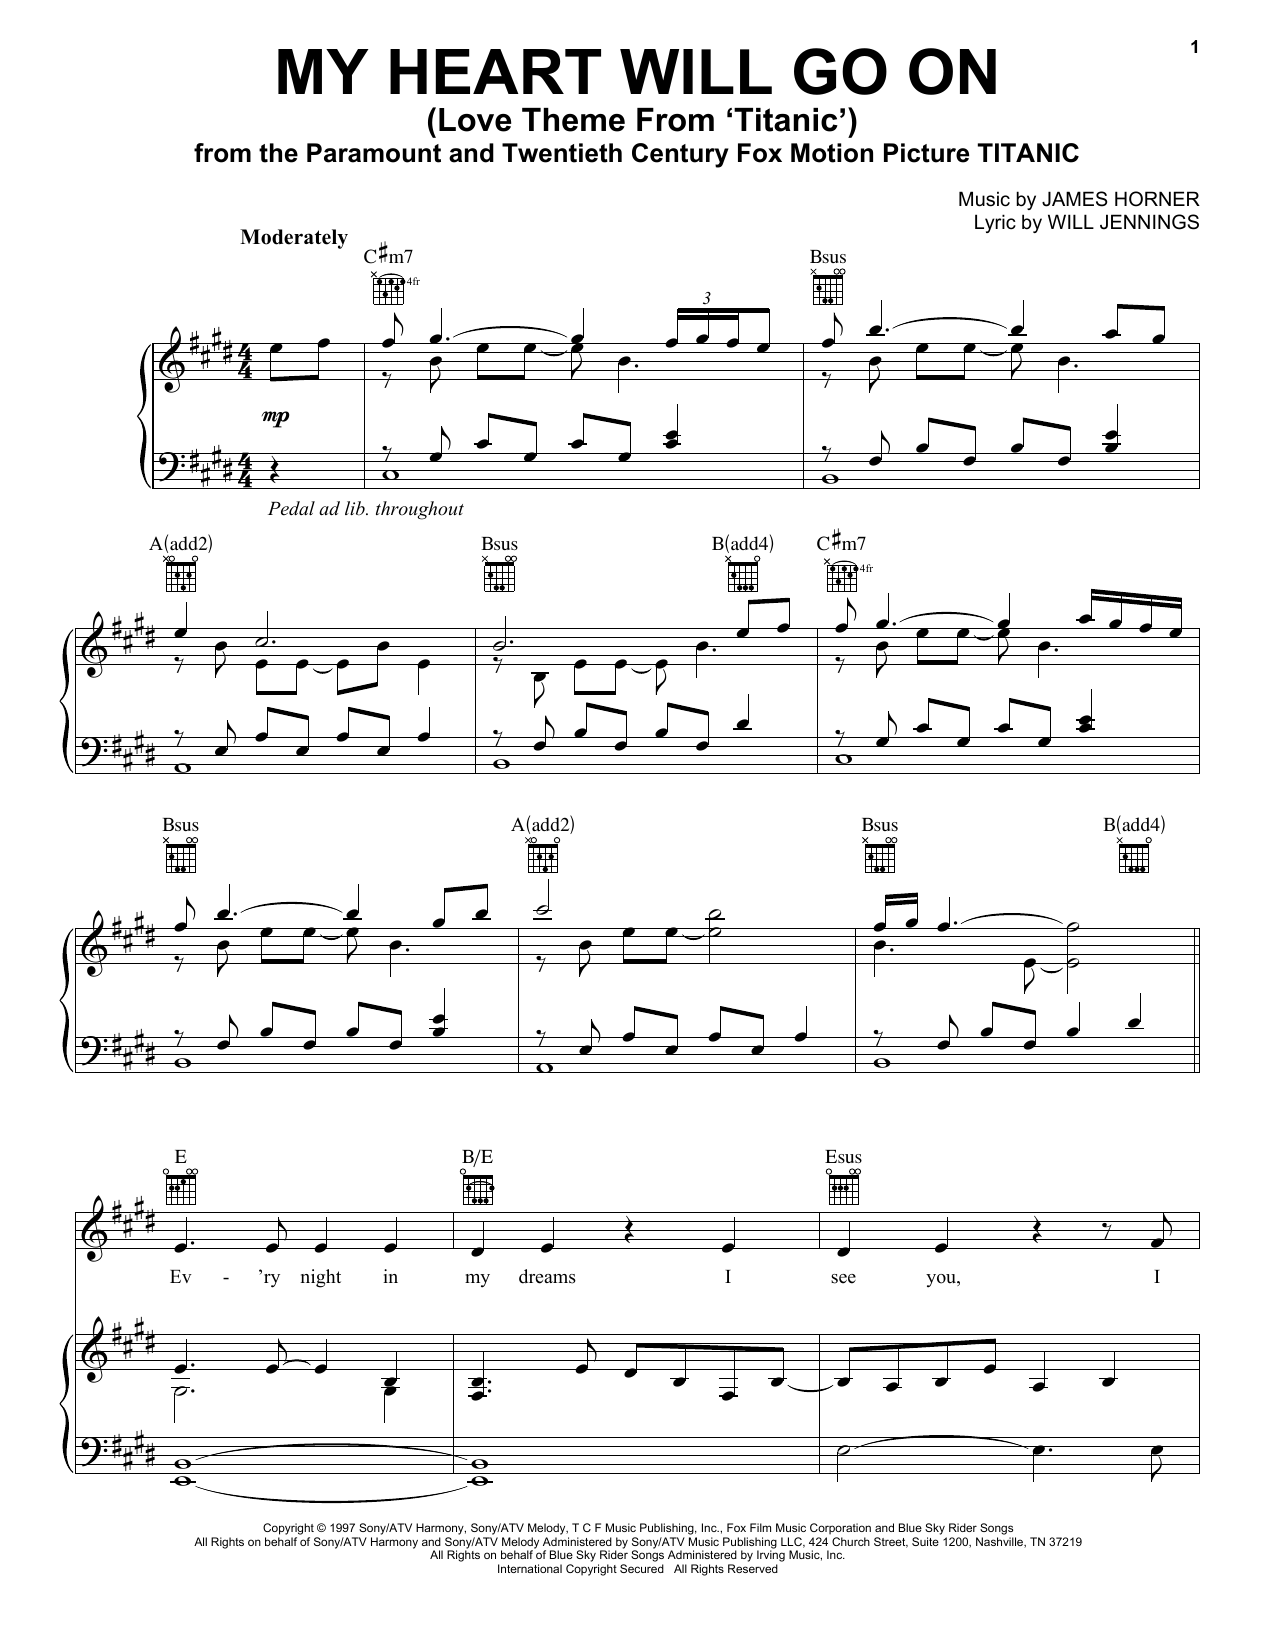 My Heart Will Go On (Love Theme From 'Titanic') (Vocal Pro + Piano/Guitar)